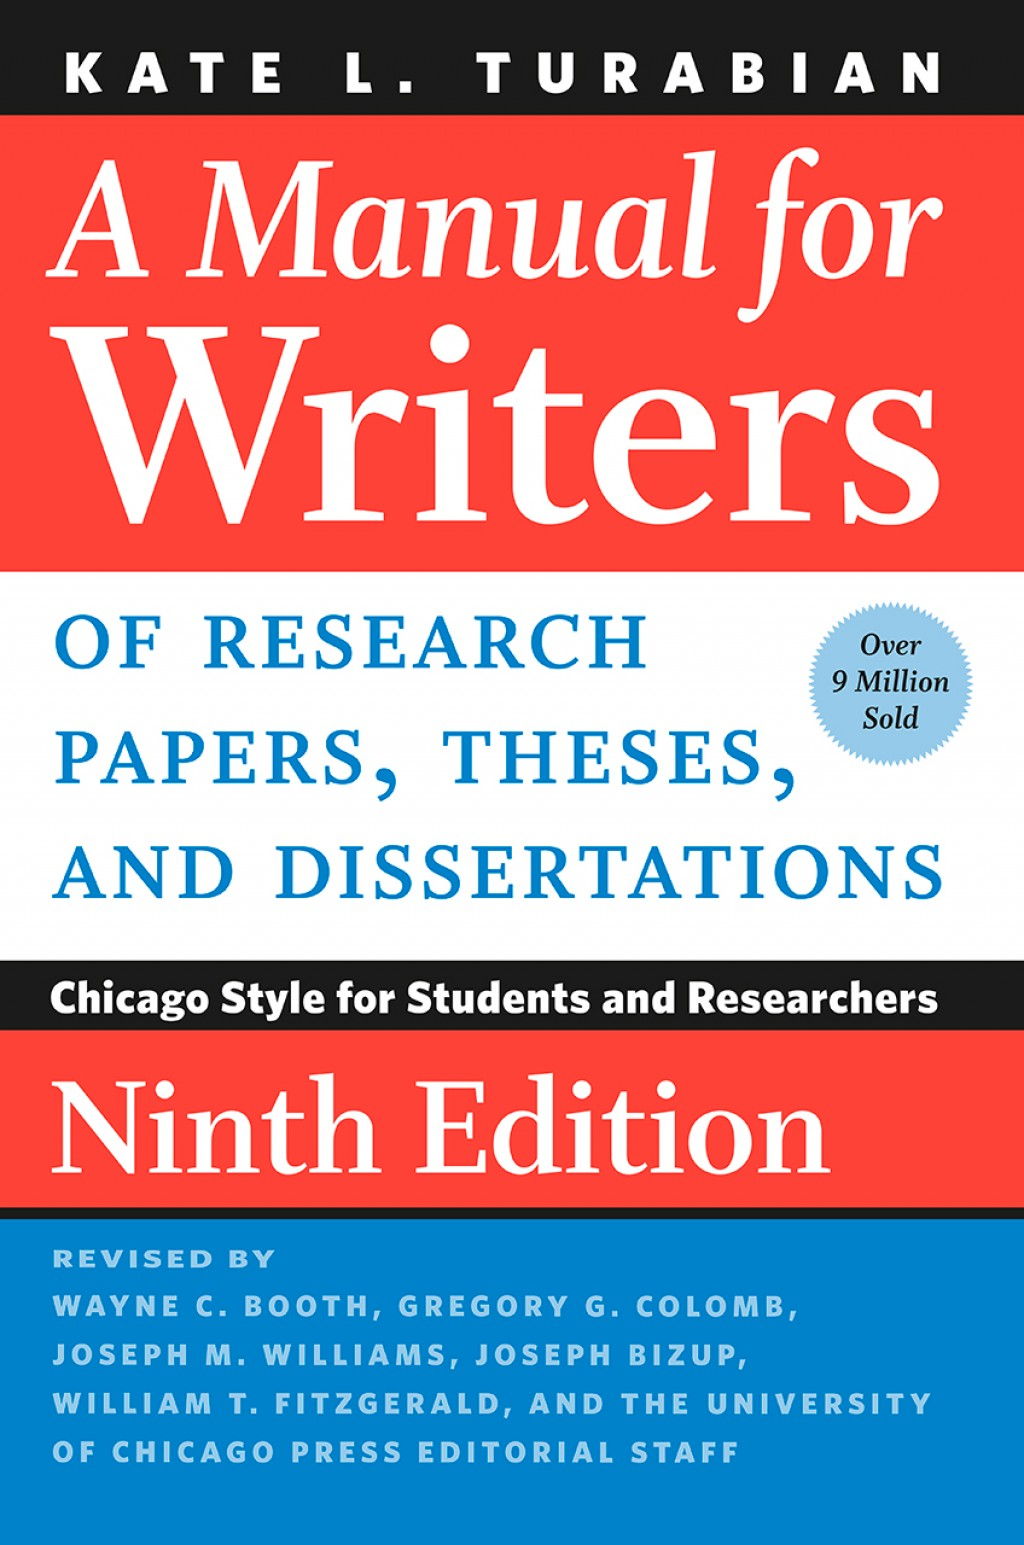 001 Manual For Writers Of Researchs Theses And Dissertations 9th Edition Frightening A Research Papers Pdf Large